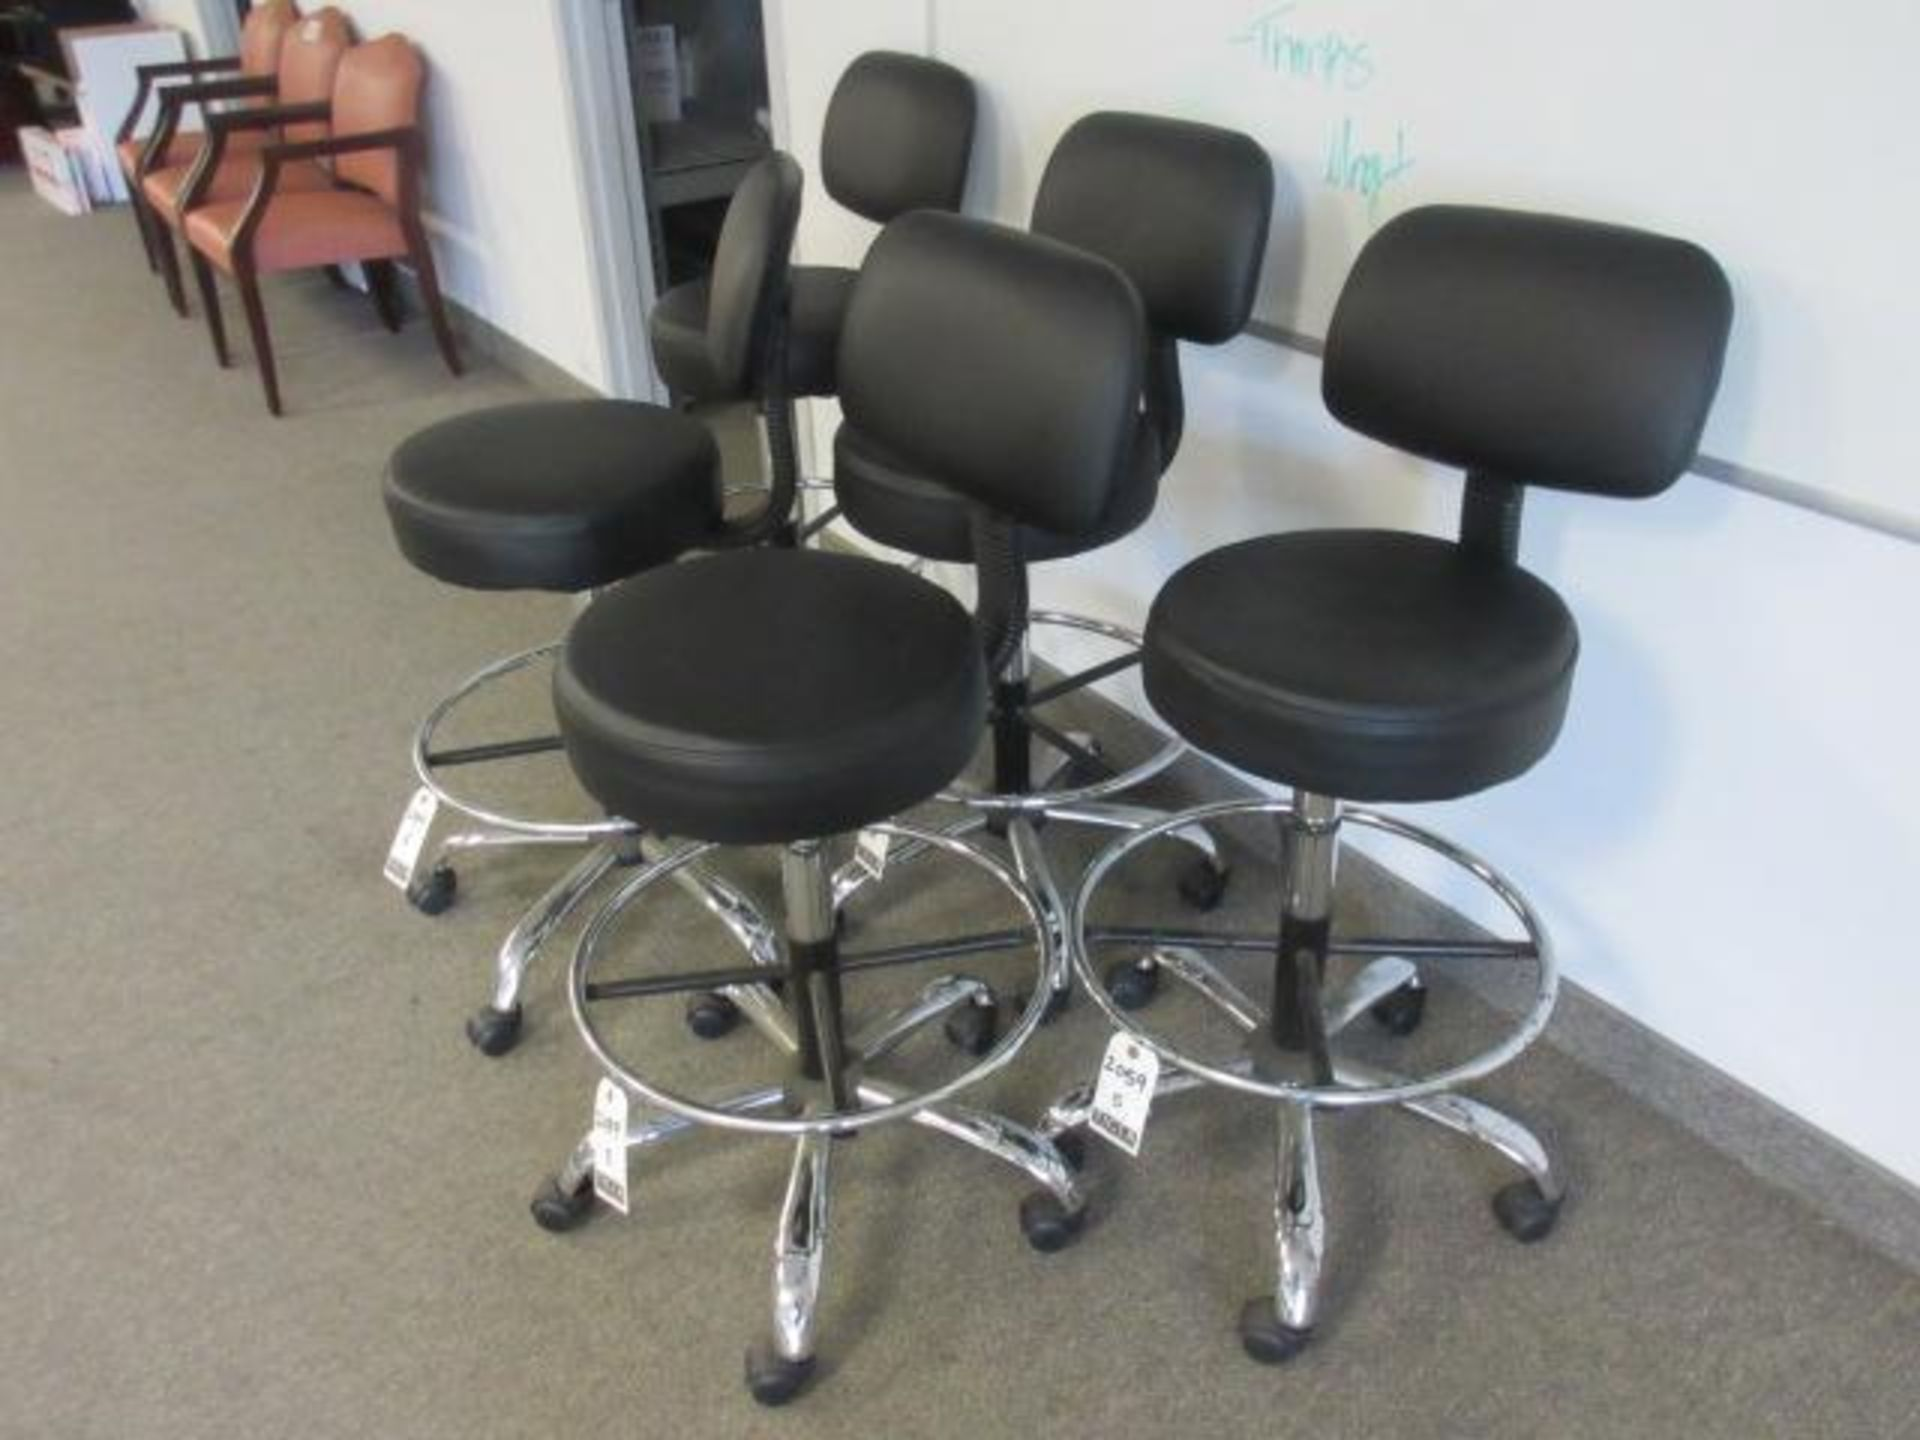 Black Lab Chairs-Swivel Base - Image 2 of 4